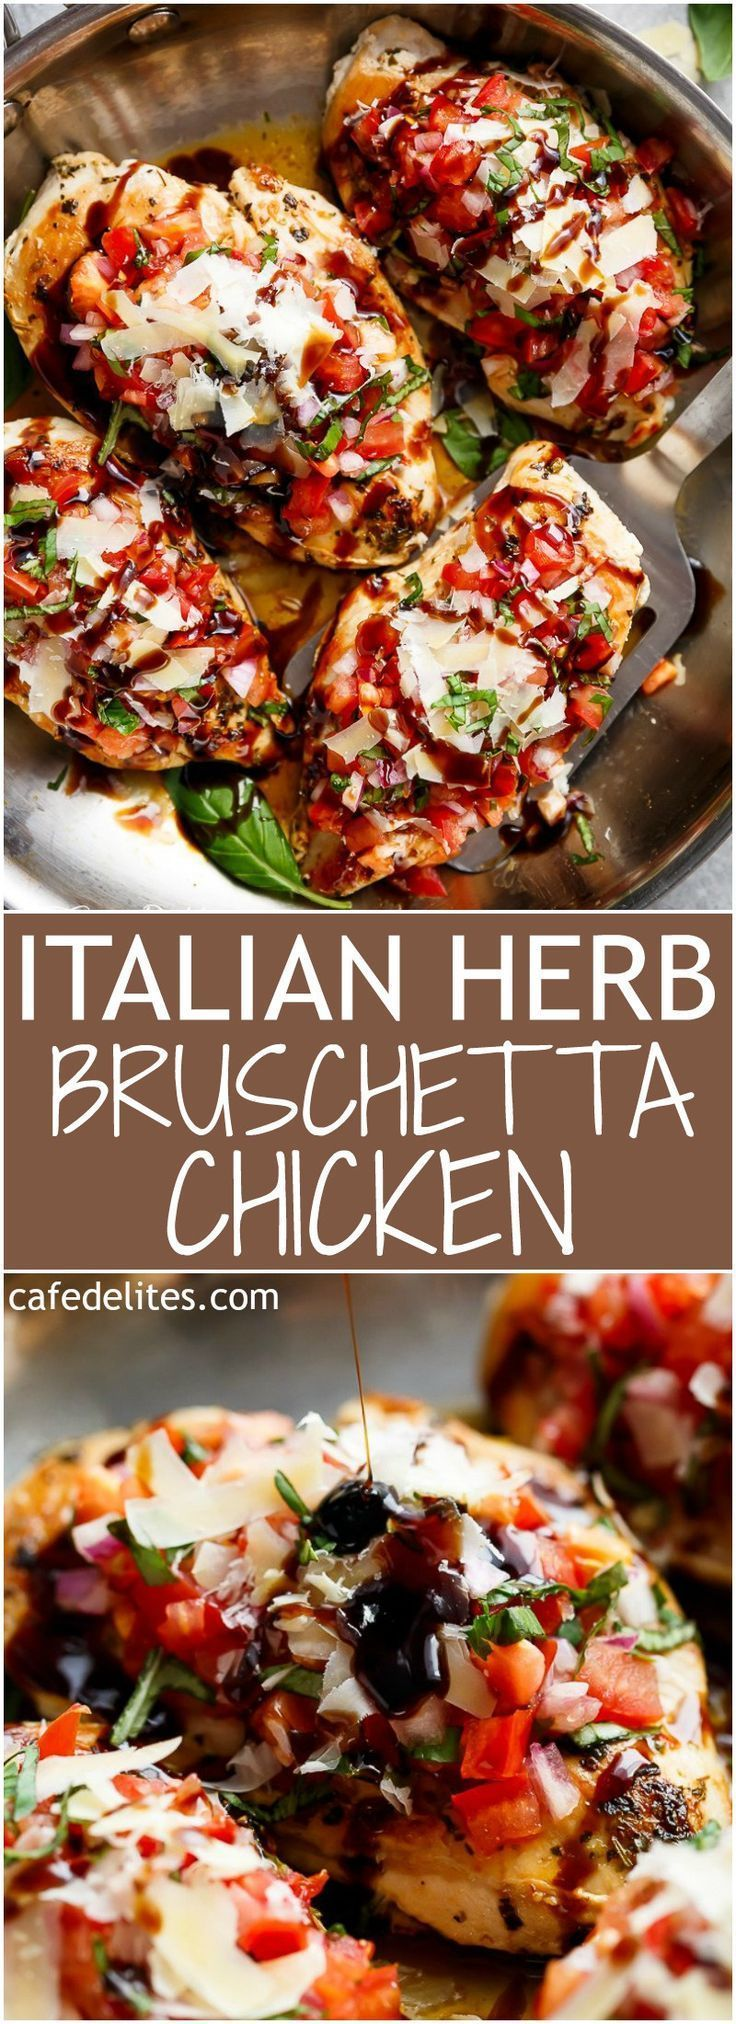 Italian Herb Bruschetta Chicken is a low carb alternative to a traditional Bruschetta! Transform ordinary chicken into a delicious, flavourful meal!